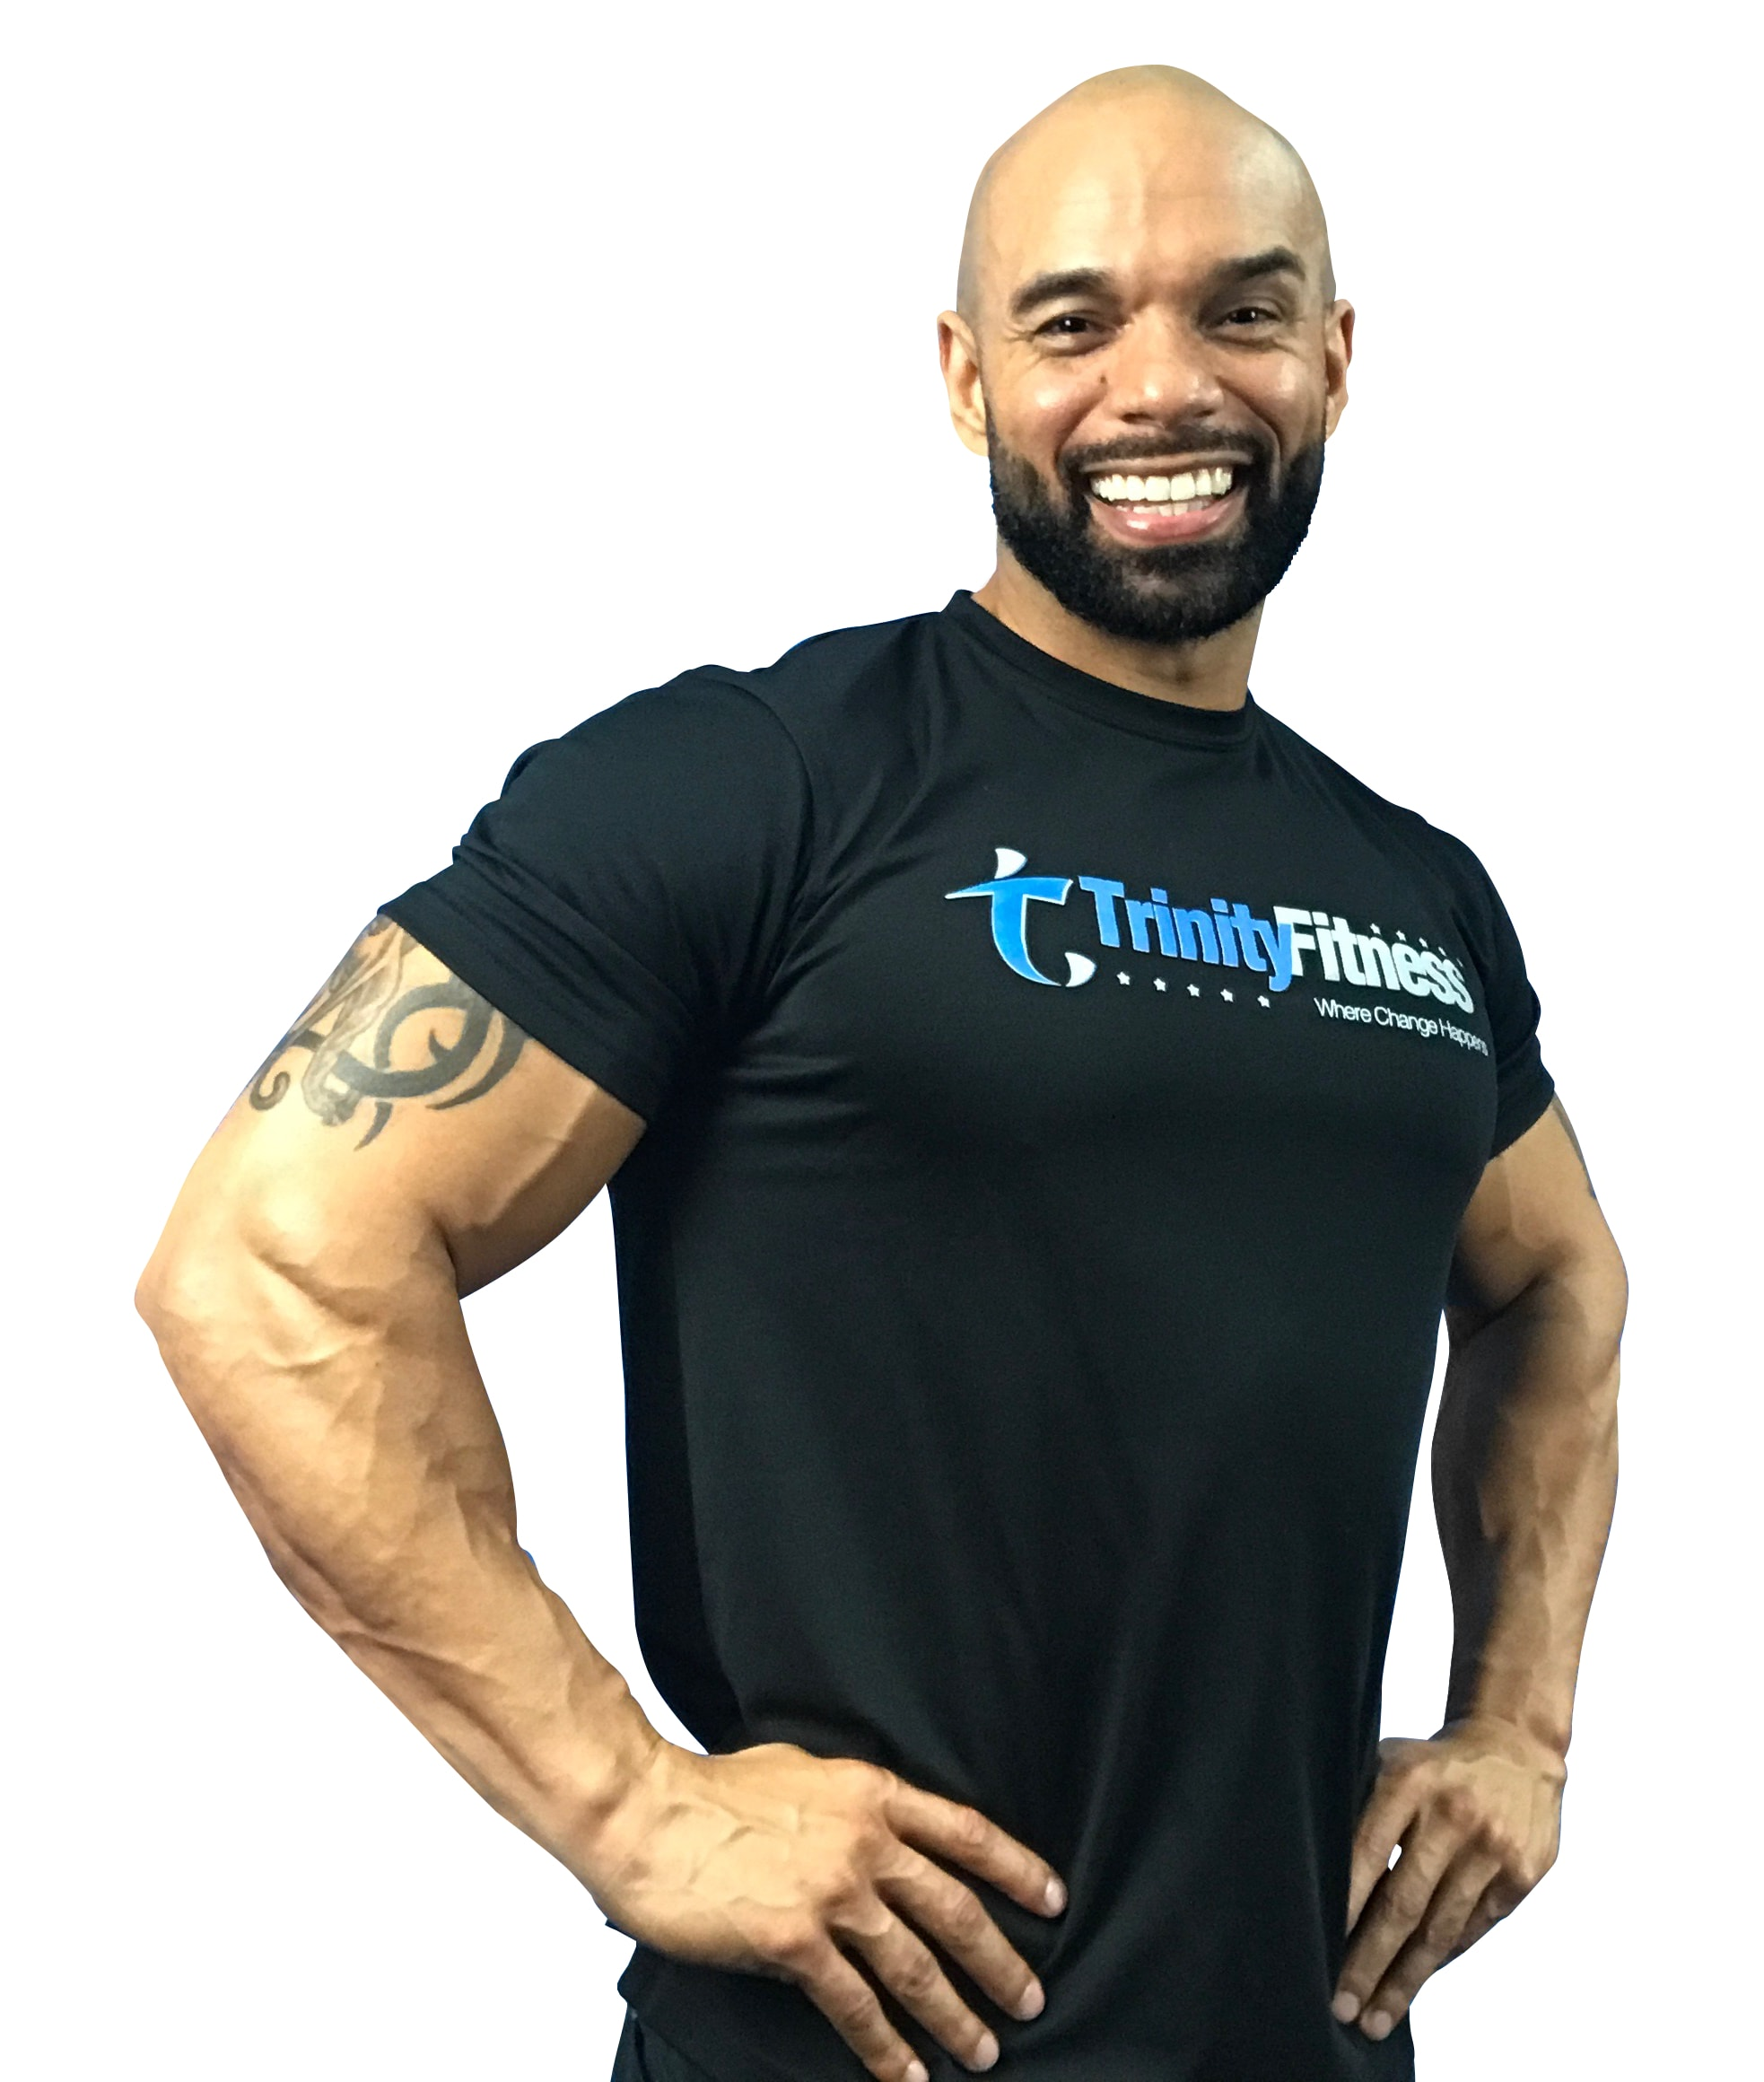 Transformation Coach CC Matthews